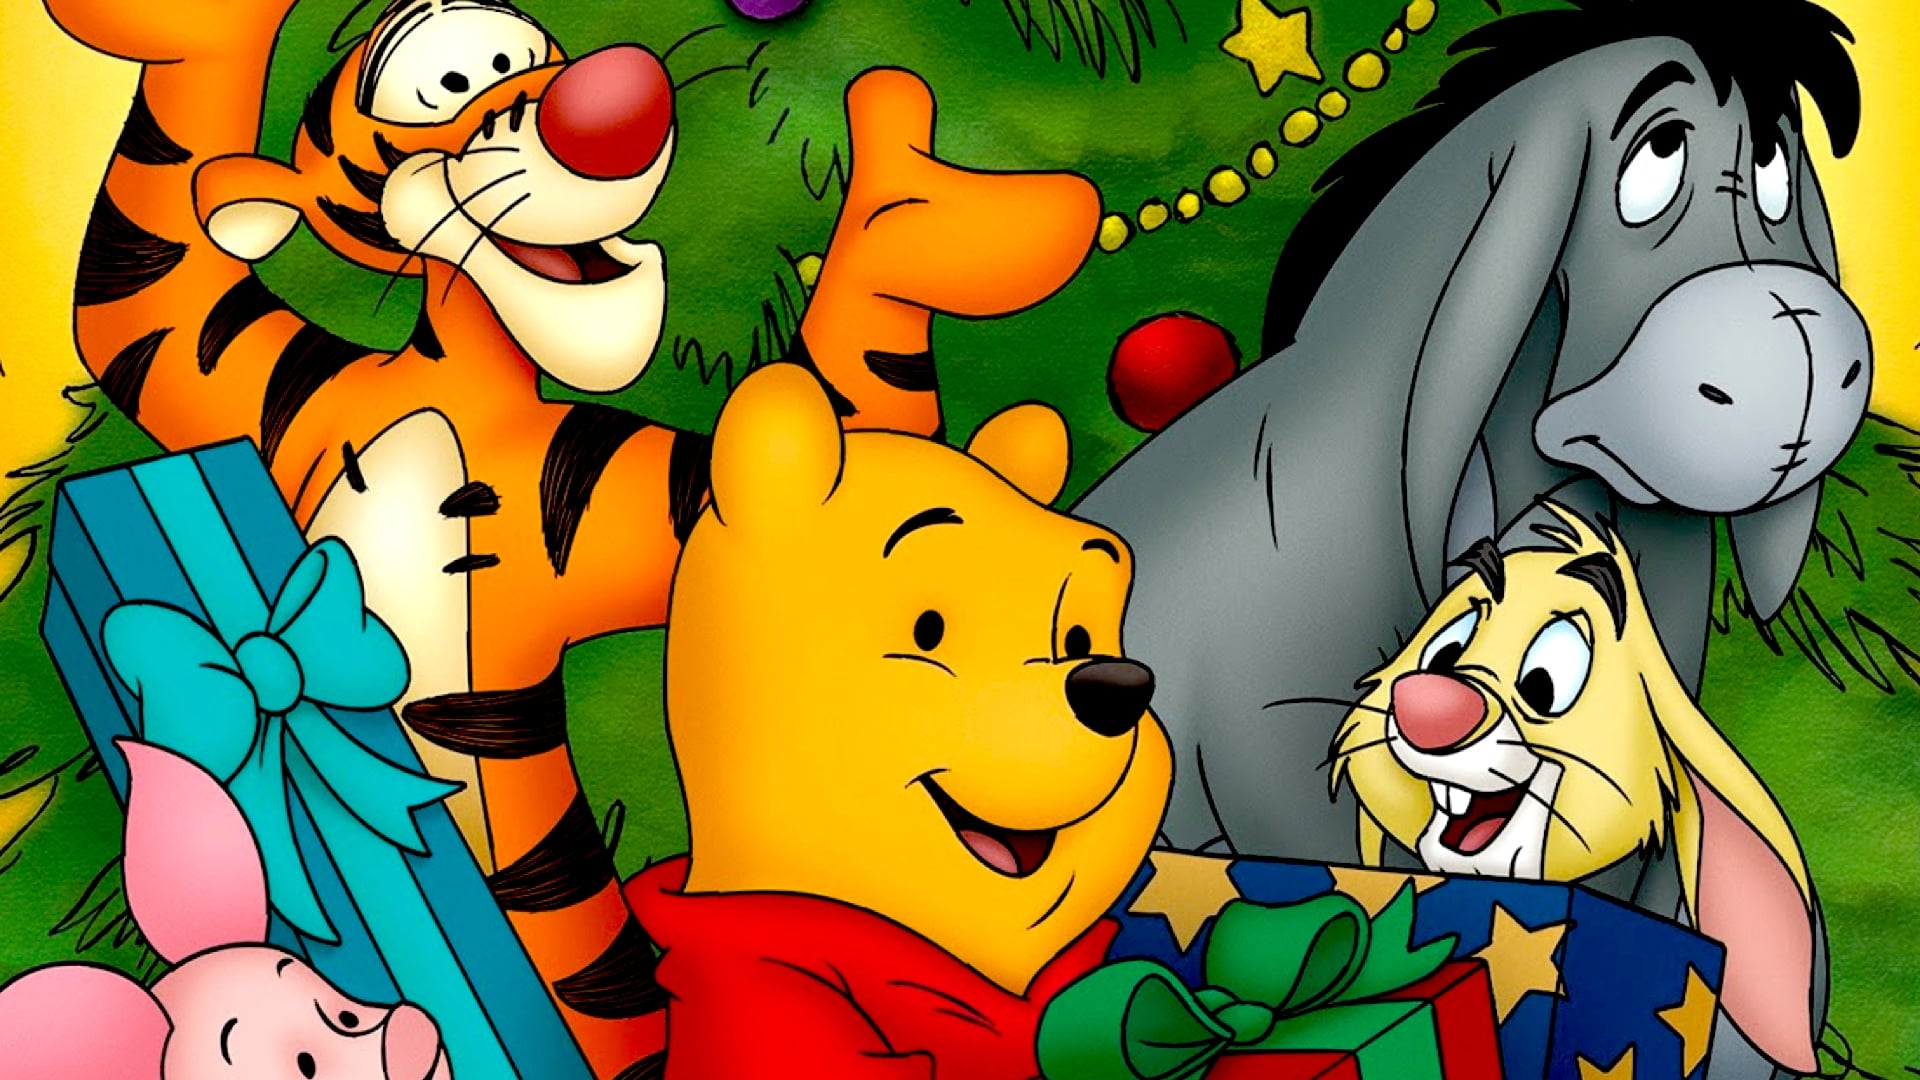 Winnie the Pooh: A Very Merry Pooh Year Movie